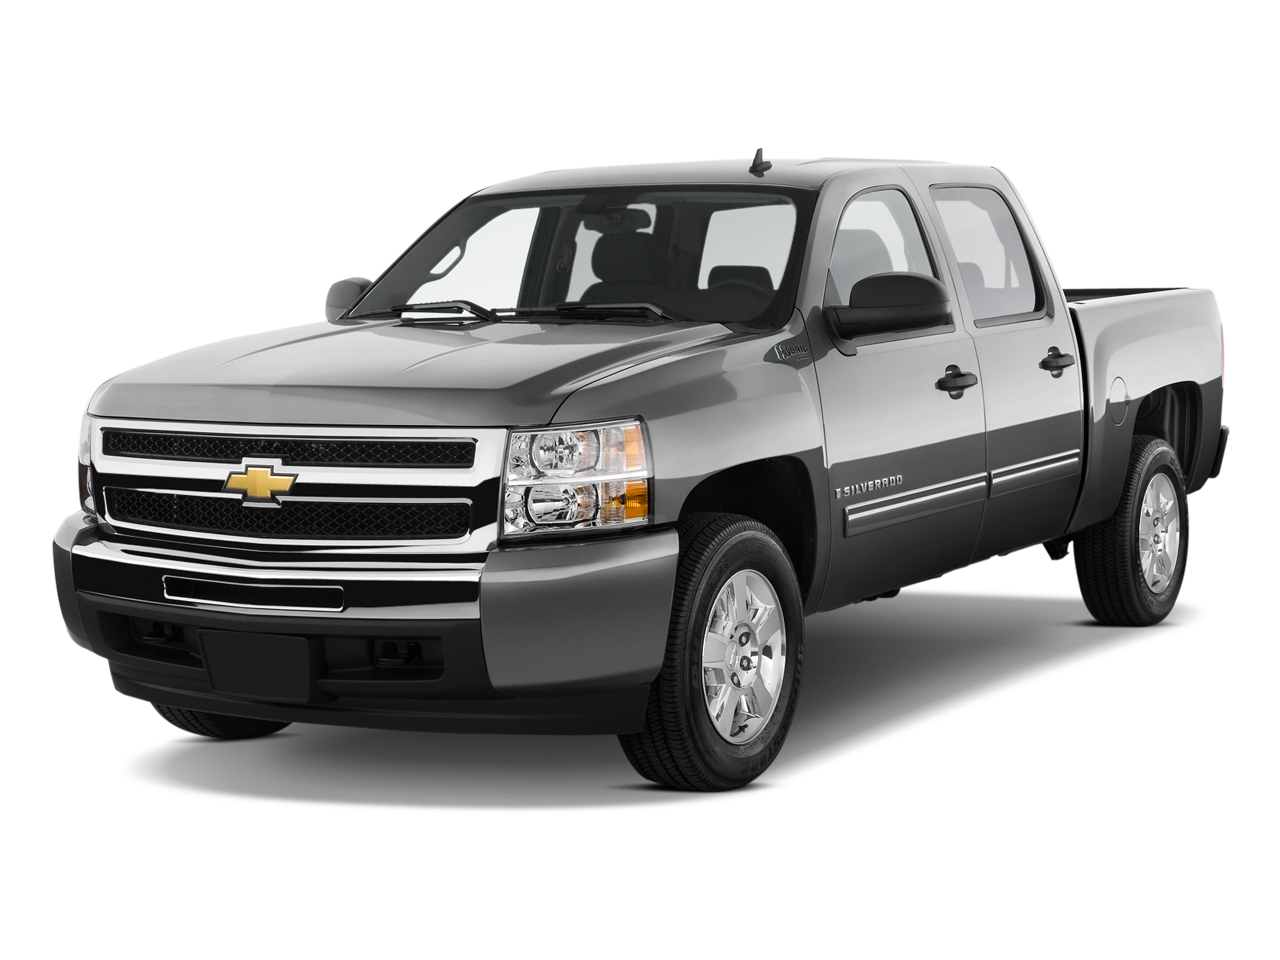 2010 chevrolet silverado 1500 hybrid chevy review ratings specs prices and photos the. Black Bedroom Furniture Sets. Home Design Ideas